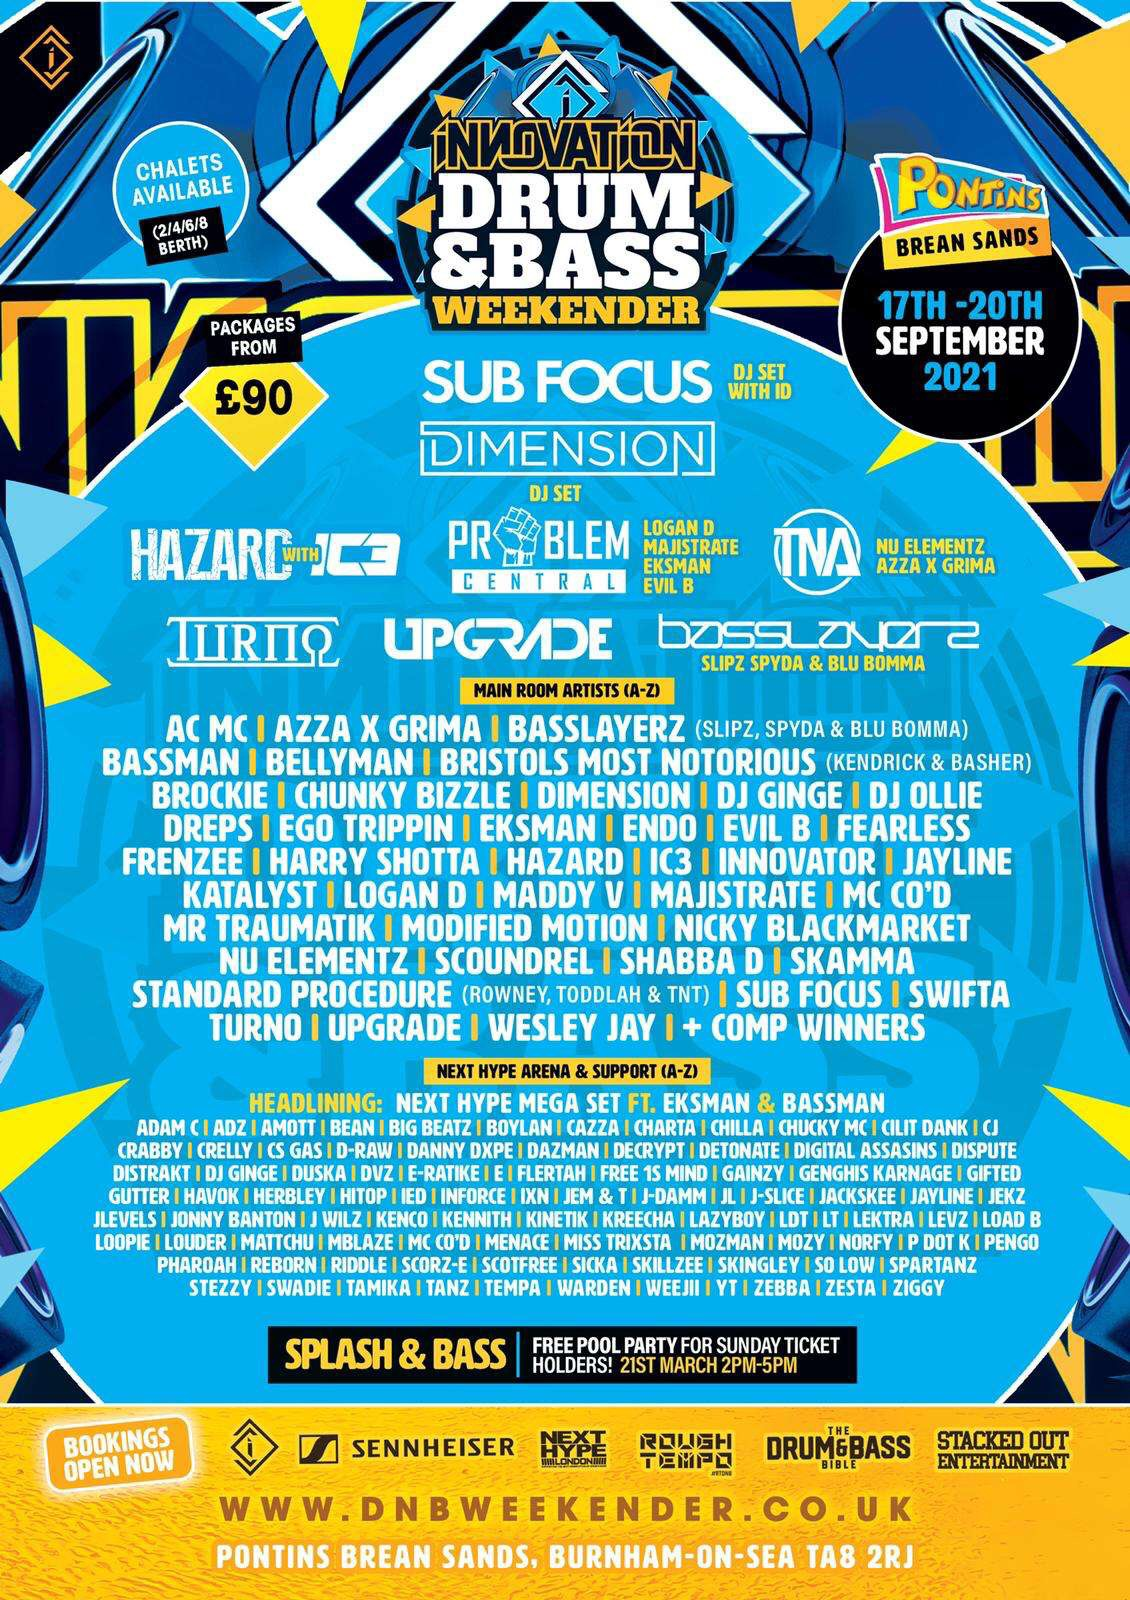 [17.9.21 - 20.9.21] Innovation Drum And Bass Weekender 2021